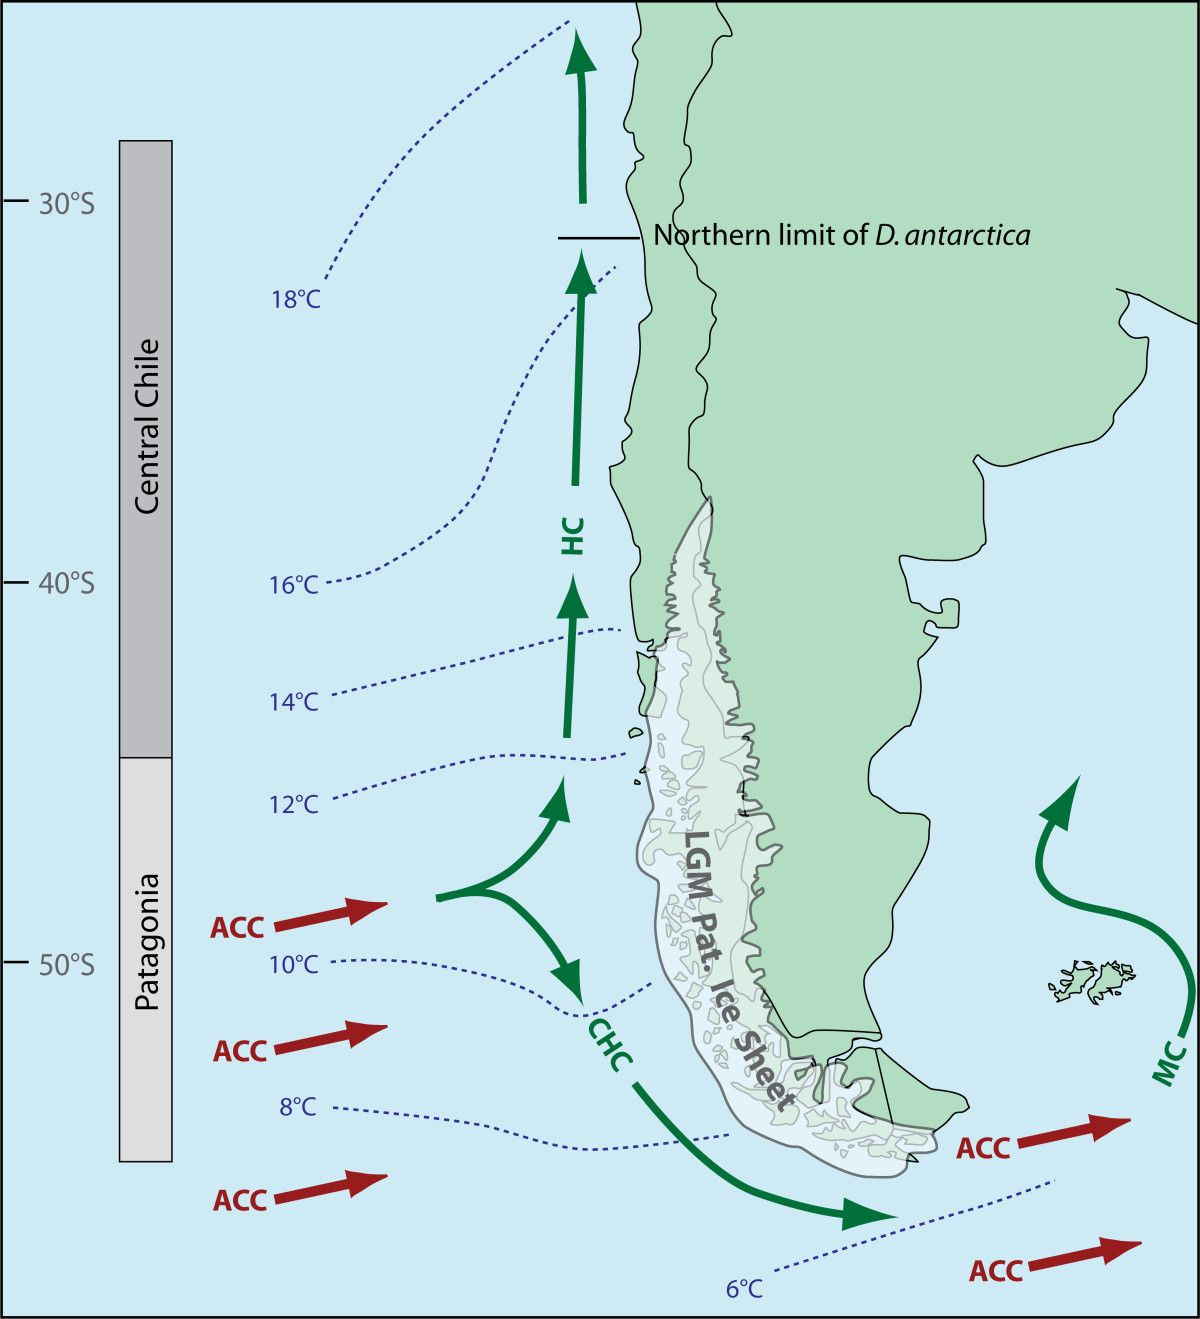 Map: Southern South America during the Last Glacial Period | Honest on map of southern uk, map of southern grenada, map of southern zambia, map of southern east coast, paraguay map south america, map of southern ethiopia, temples in south america, ancient temples south america, map of southern us beaches, southern cone of latin america, map of africa, the southern region of america, map of central andes, map of southern cambodia, road map south america, map of southern singapore, map of southern mediterranean countries, map of southern us states, map of southern continent, map of central america,